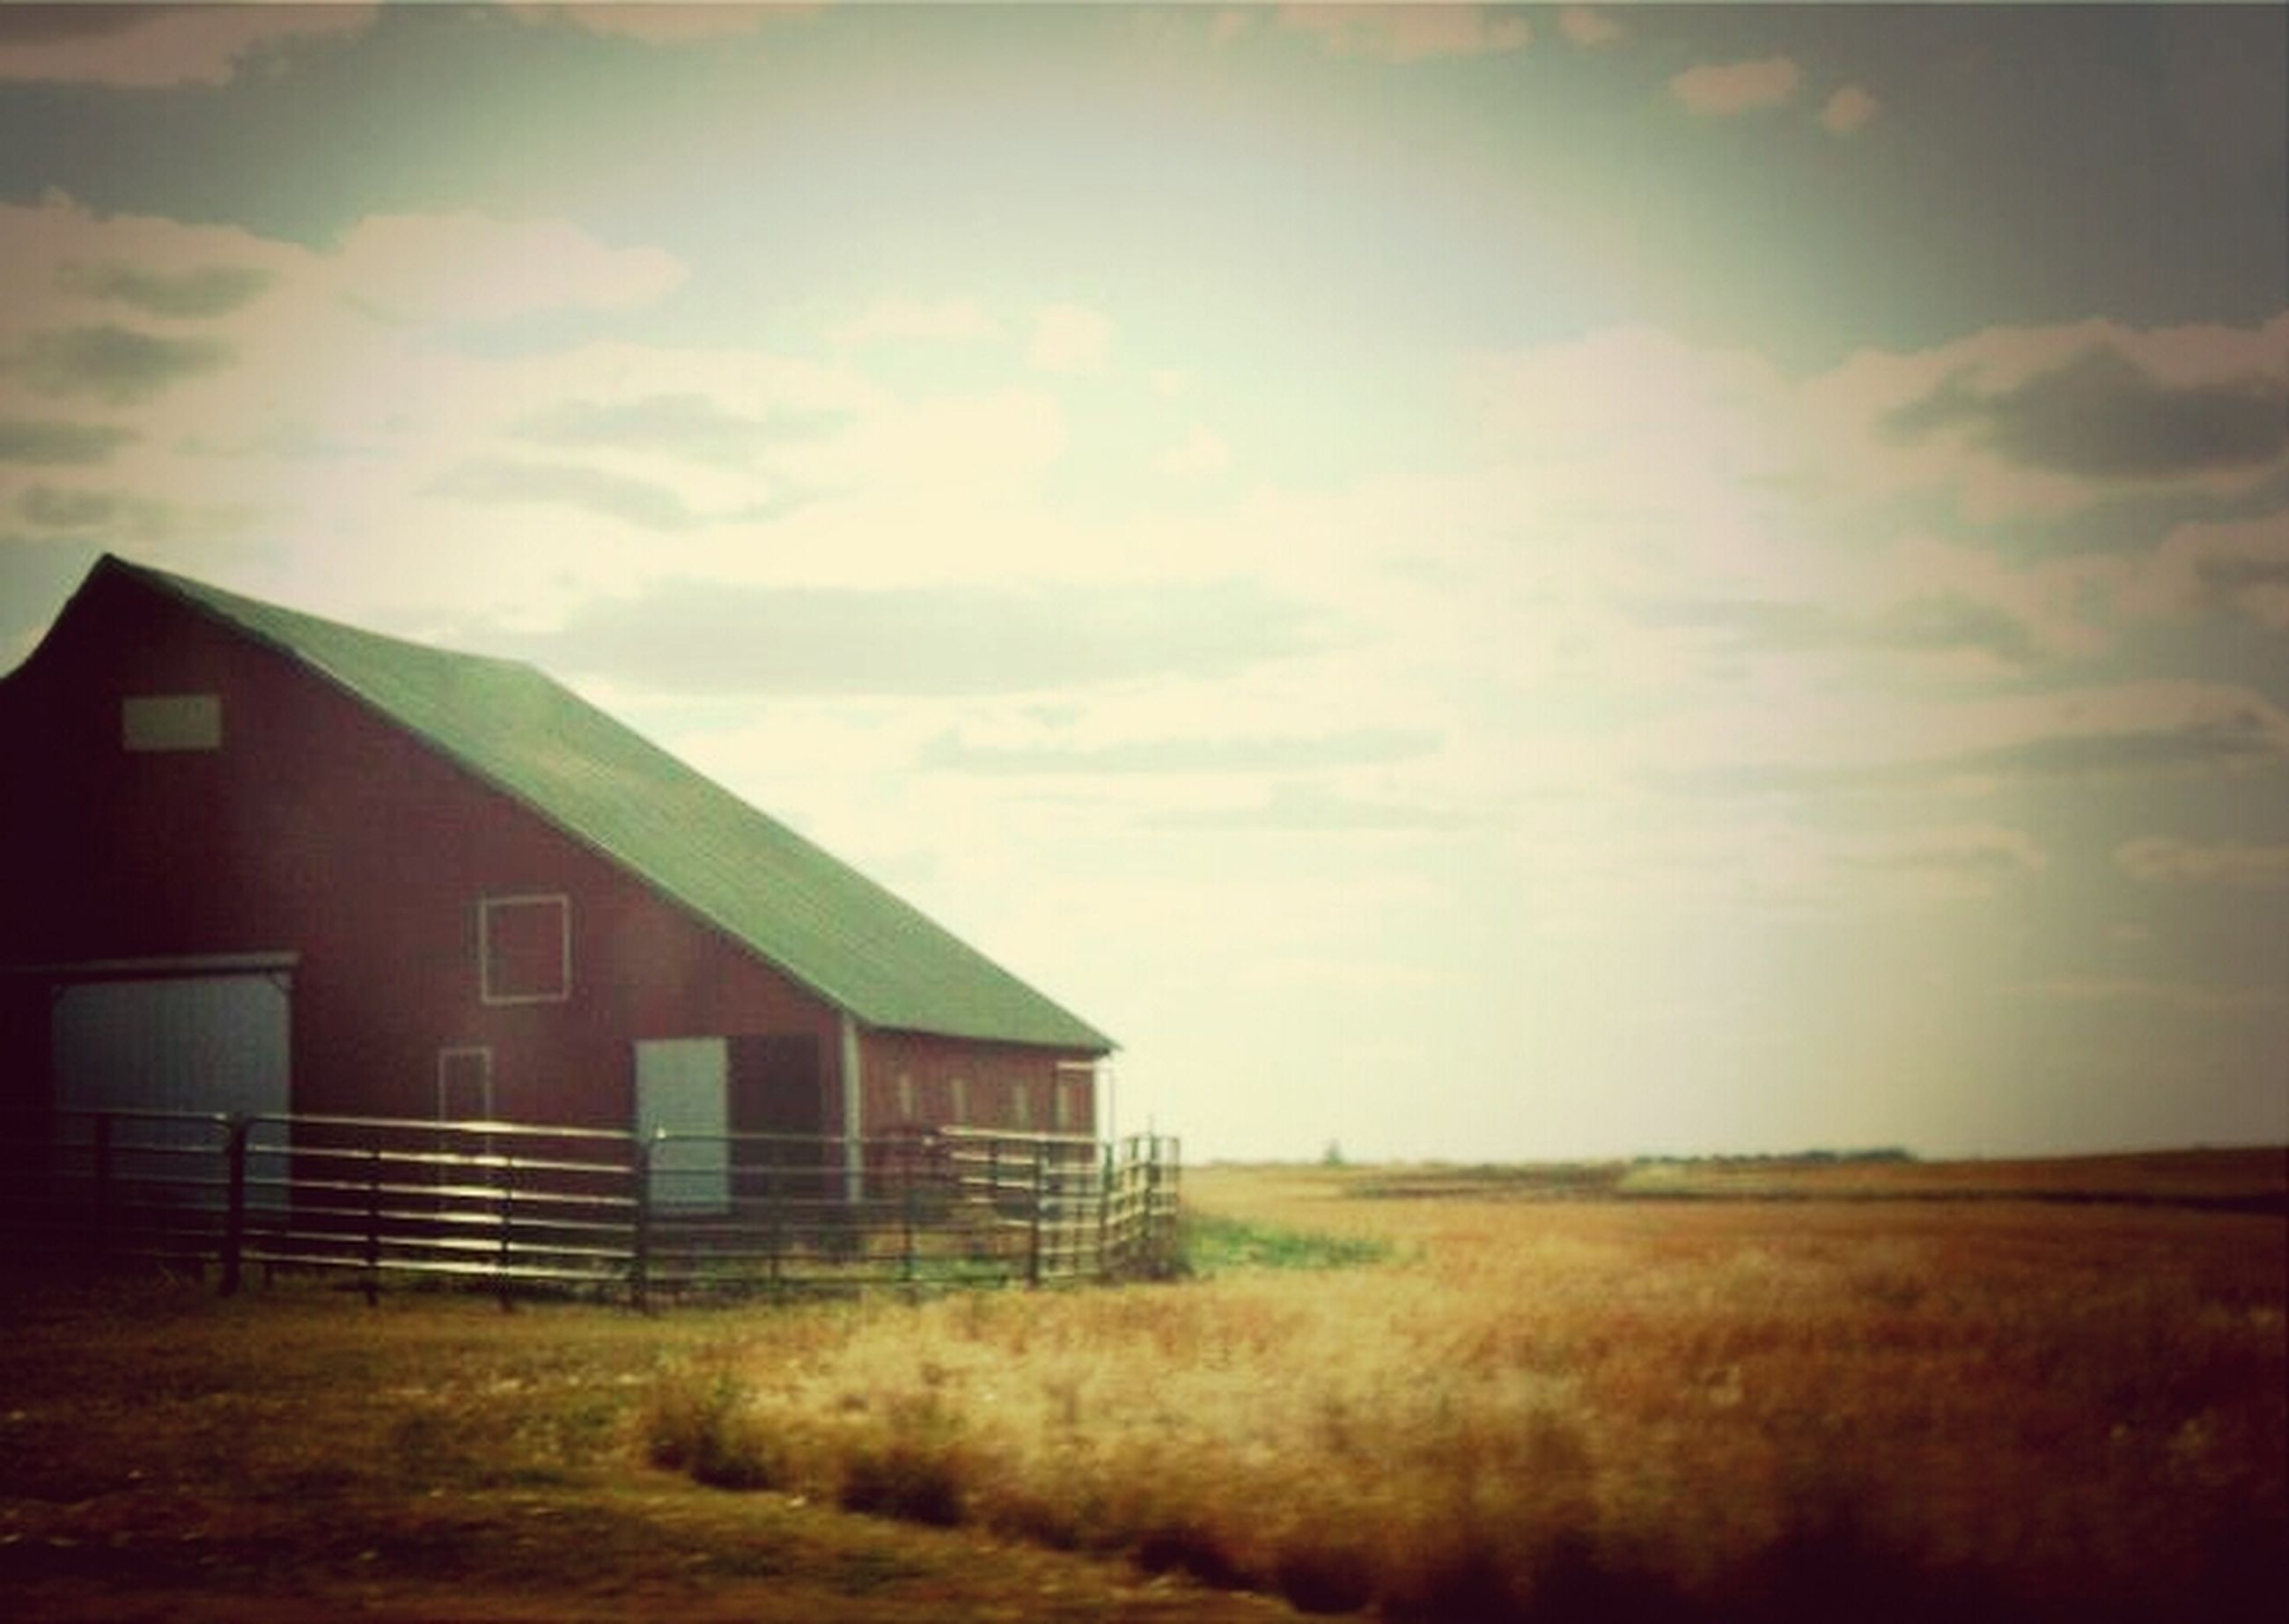 architecture, built structure, building exterior, sky, field, grass, house, cloud - sky, rural scene, landscape, grassy, cloudy, barn, farm, agriculture, cloud, nature, no people, outdoors, residential structure